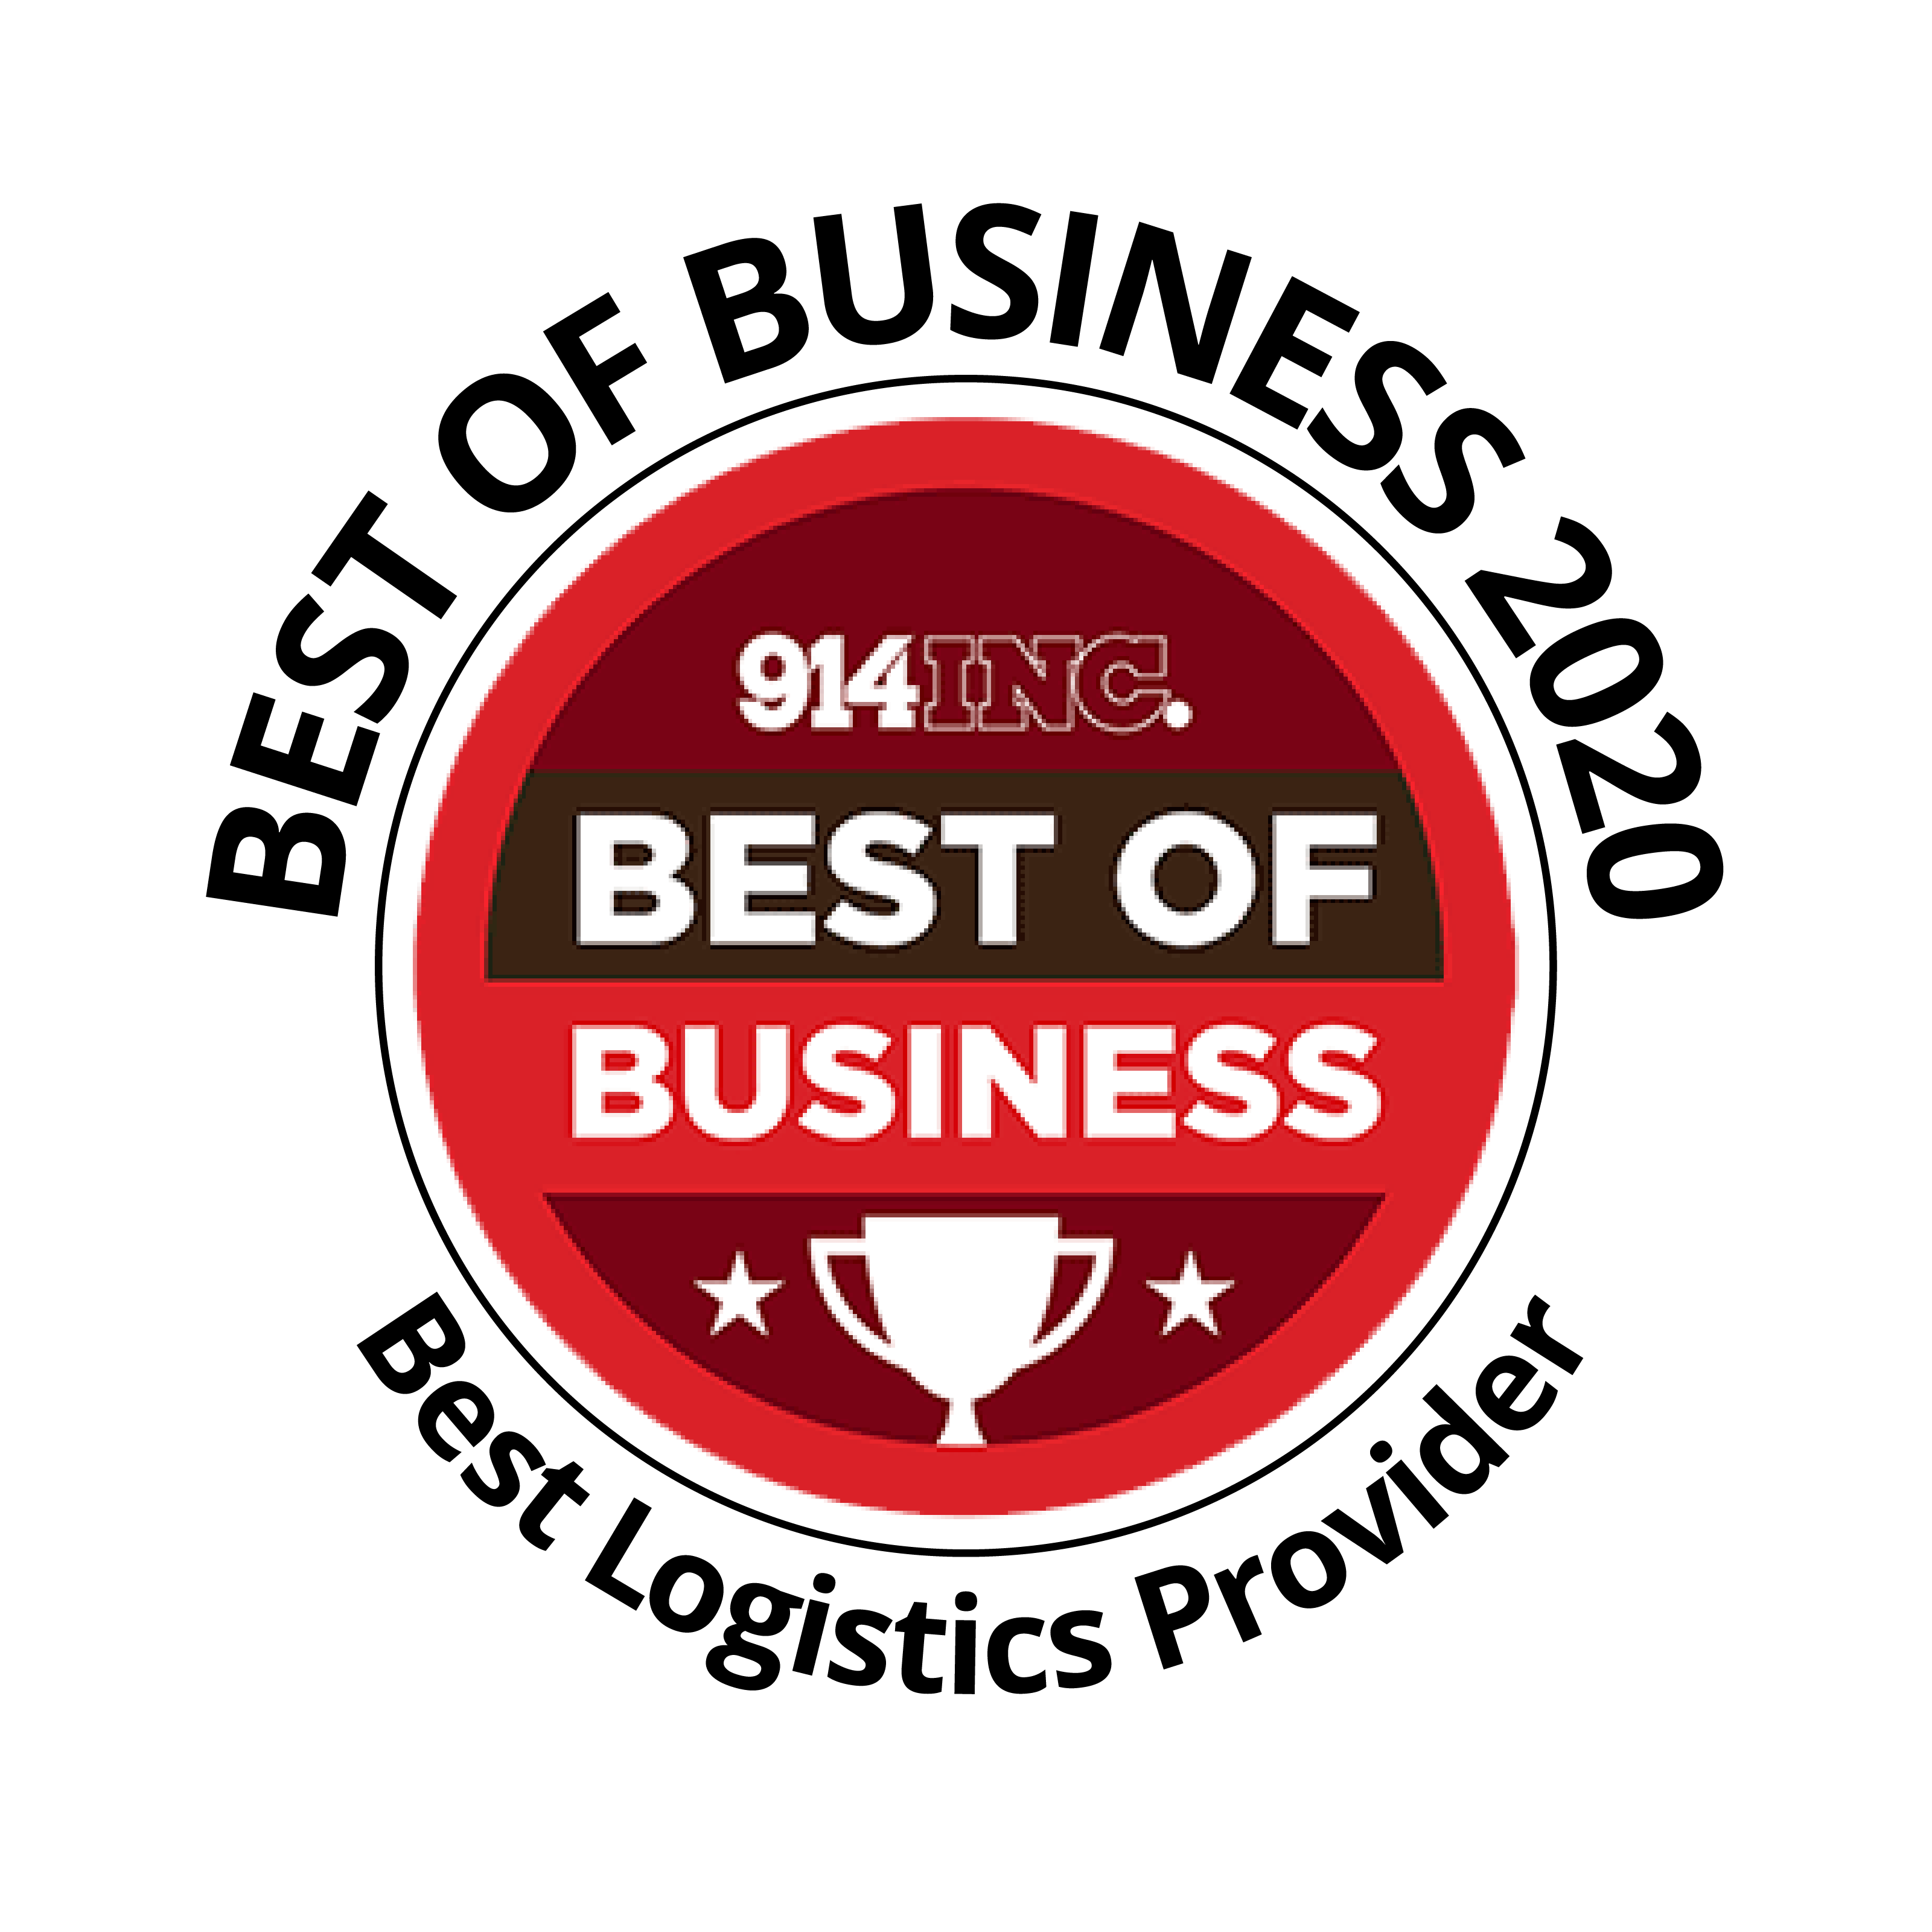 Best of Business 2020 - Best Logistics Provider